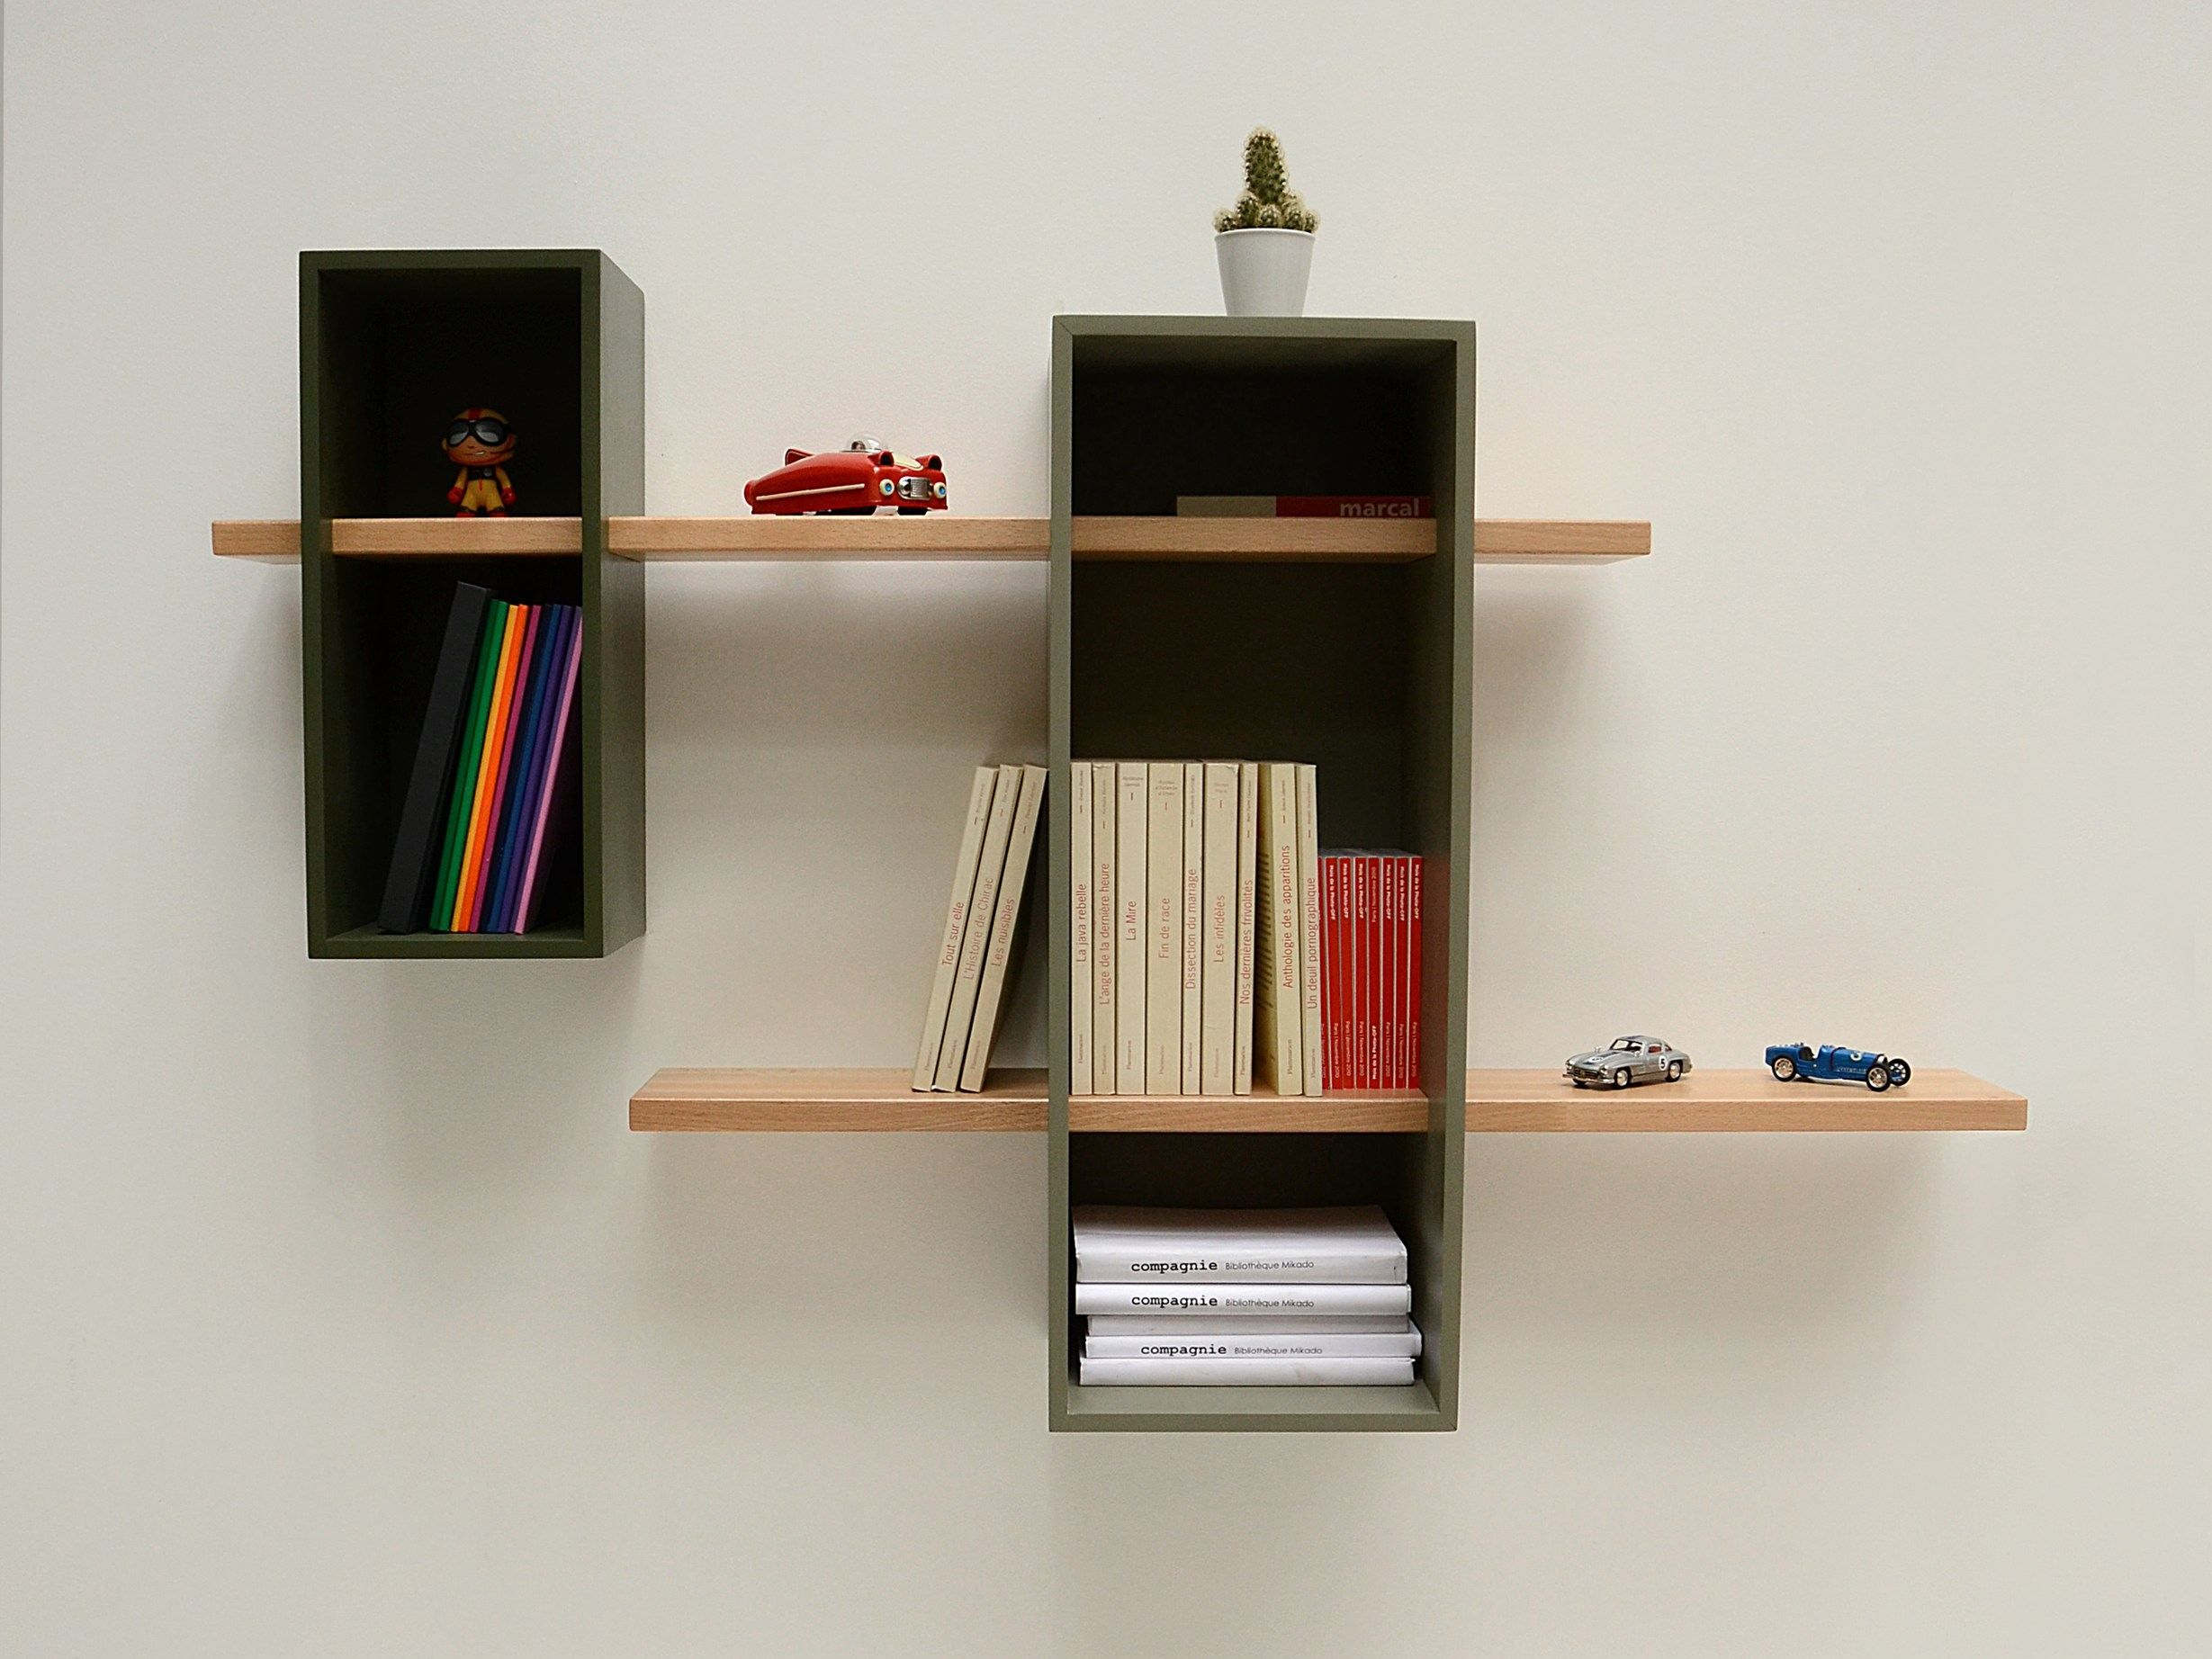 Wall Mounted Sectional Bookcase Max By Compagnie Design Olivier Chabaud